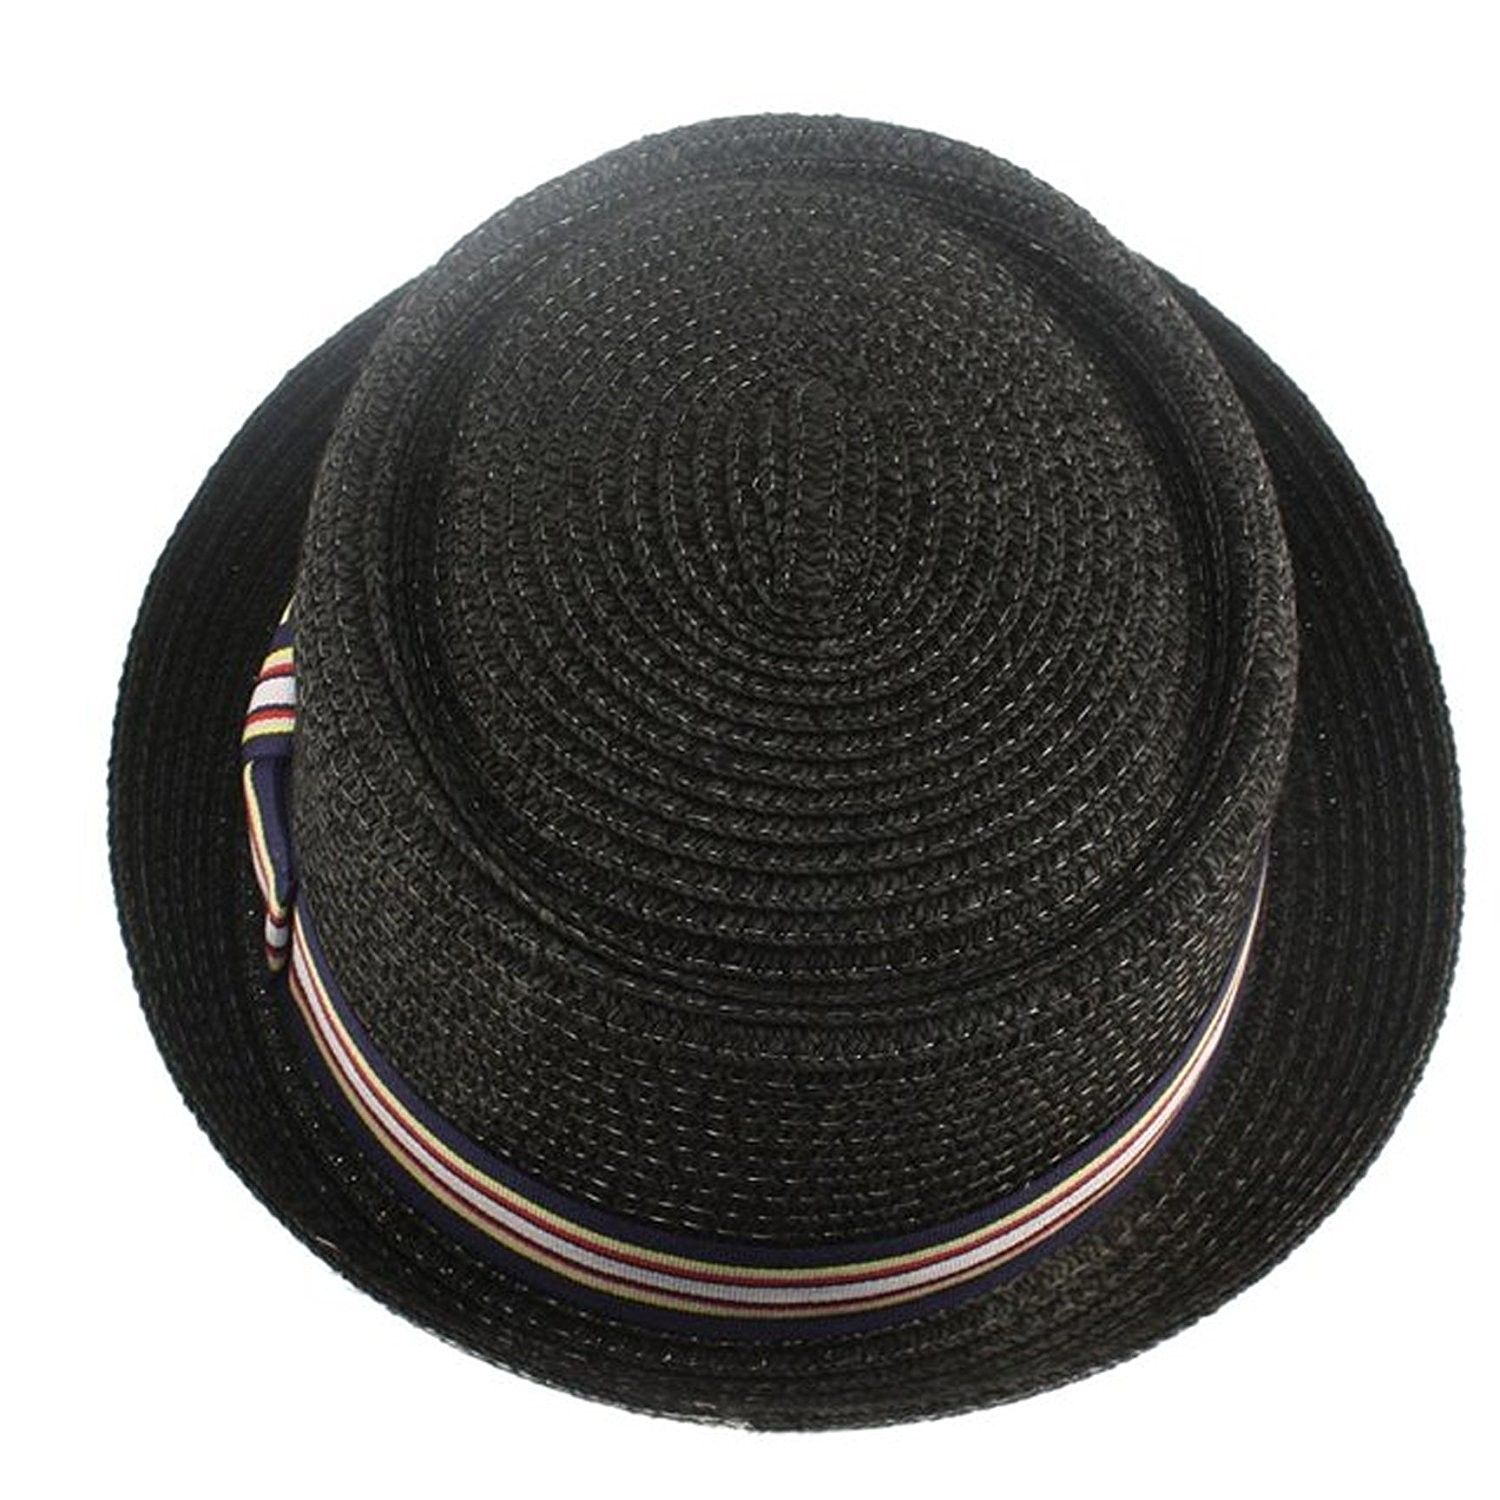 97199cf05f3 Men s Fancy Summer Straw Pork Pie Derby Fedora Upturn Brim Hat ...